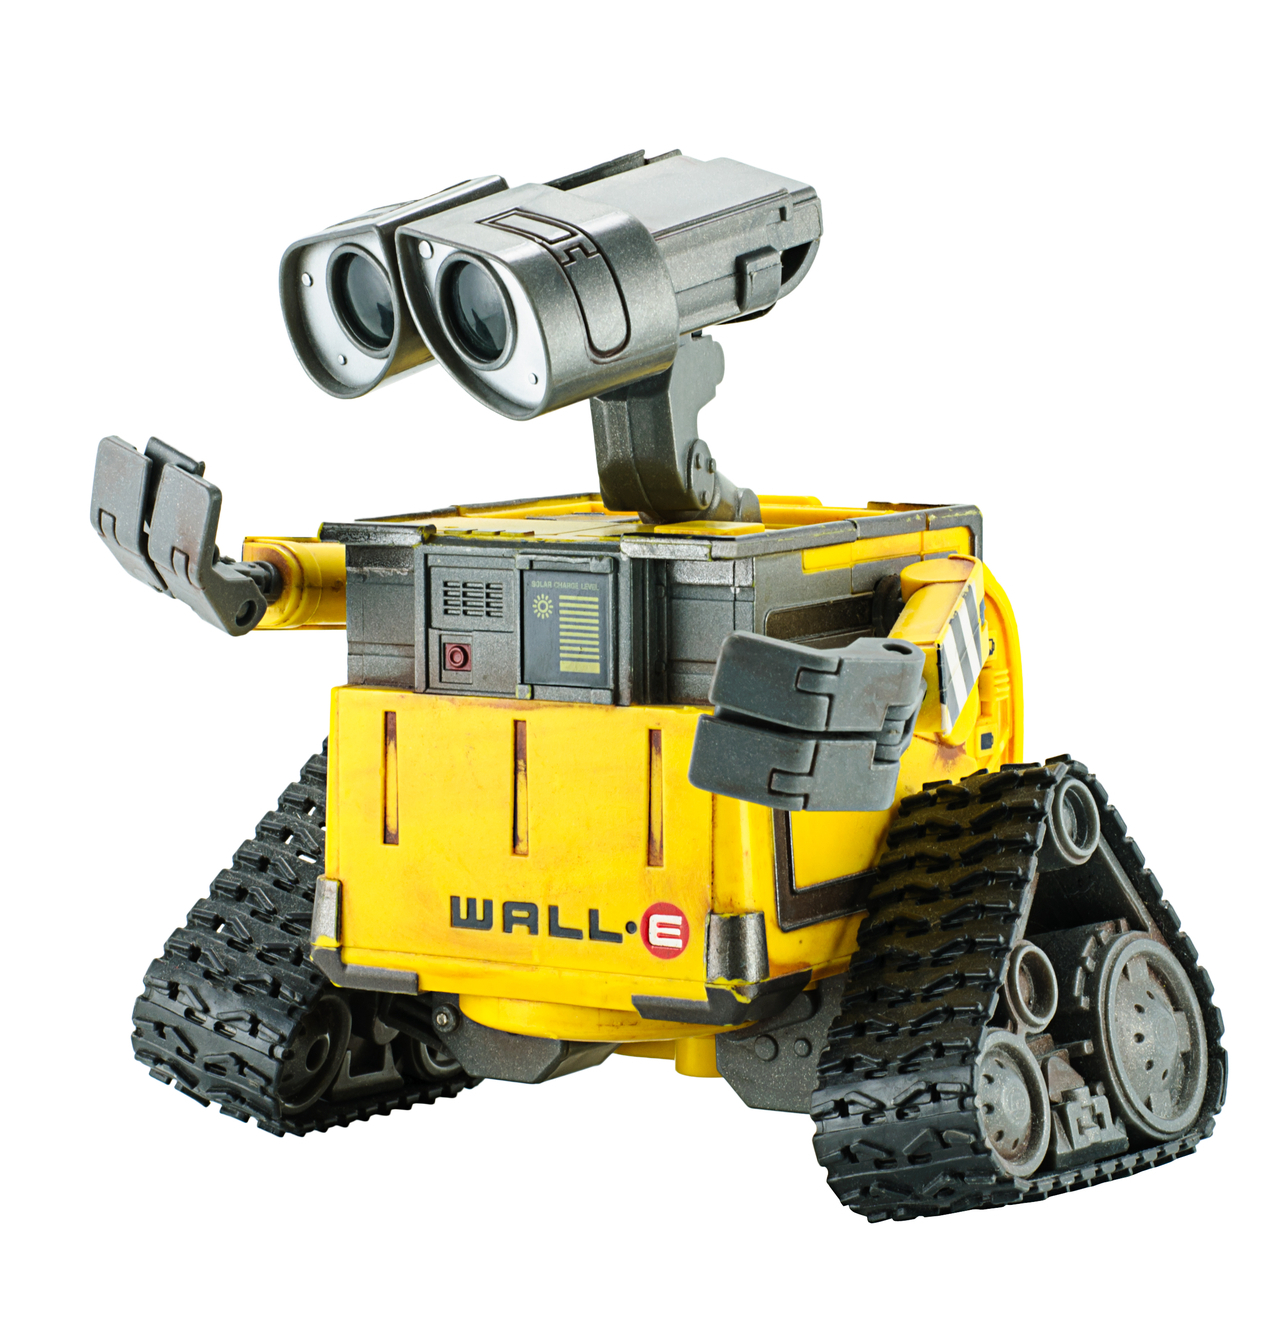 WALL-E robot toy character form WALL-E animation film - image courtesy of Depositphotos.